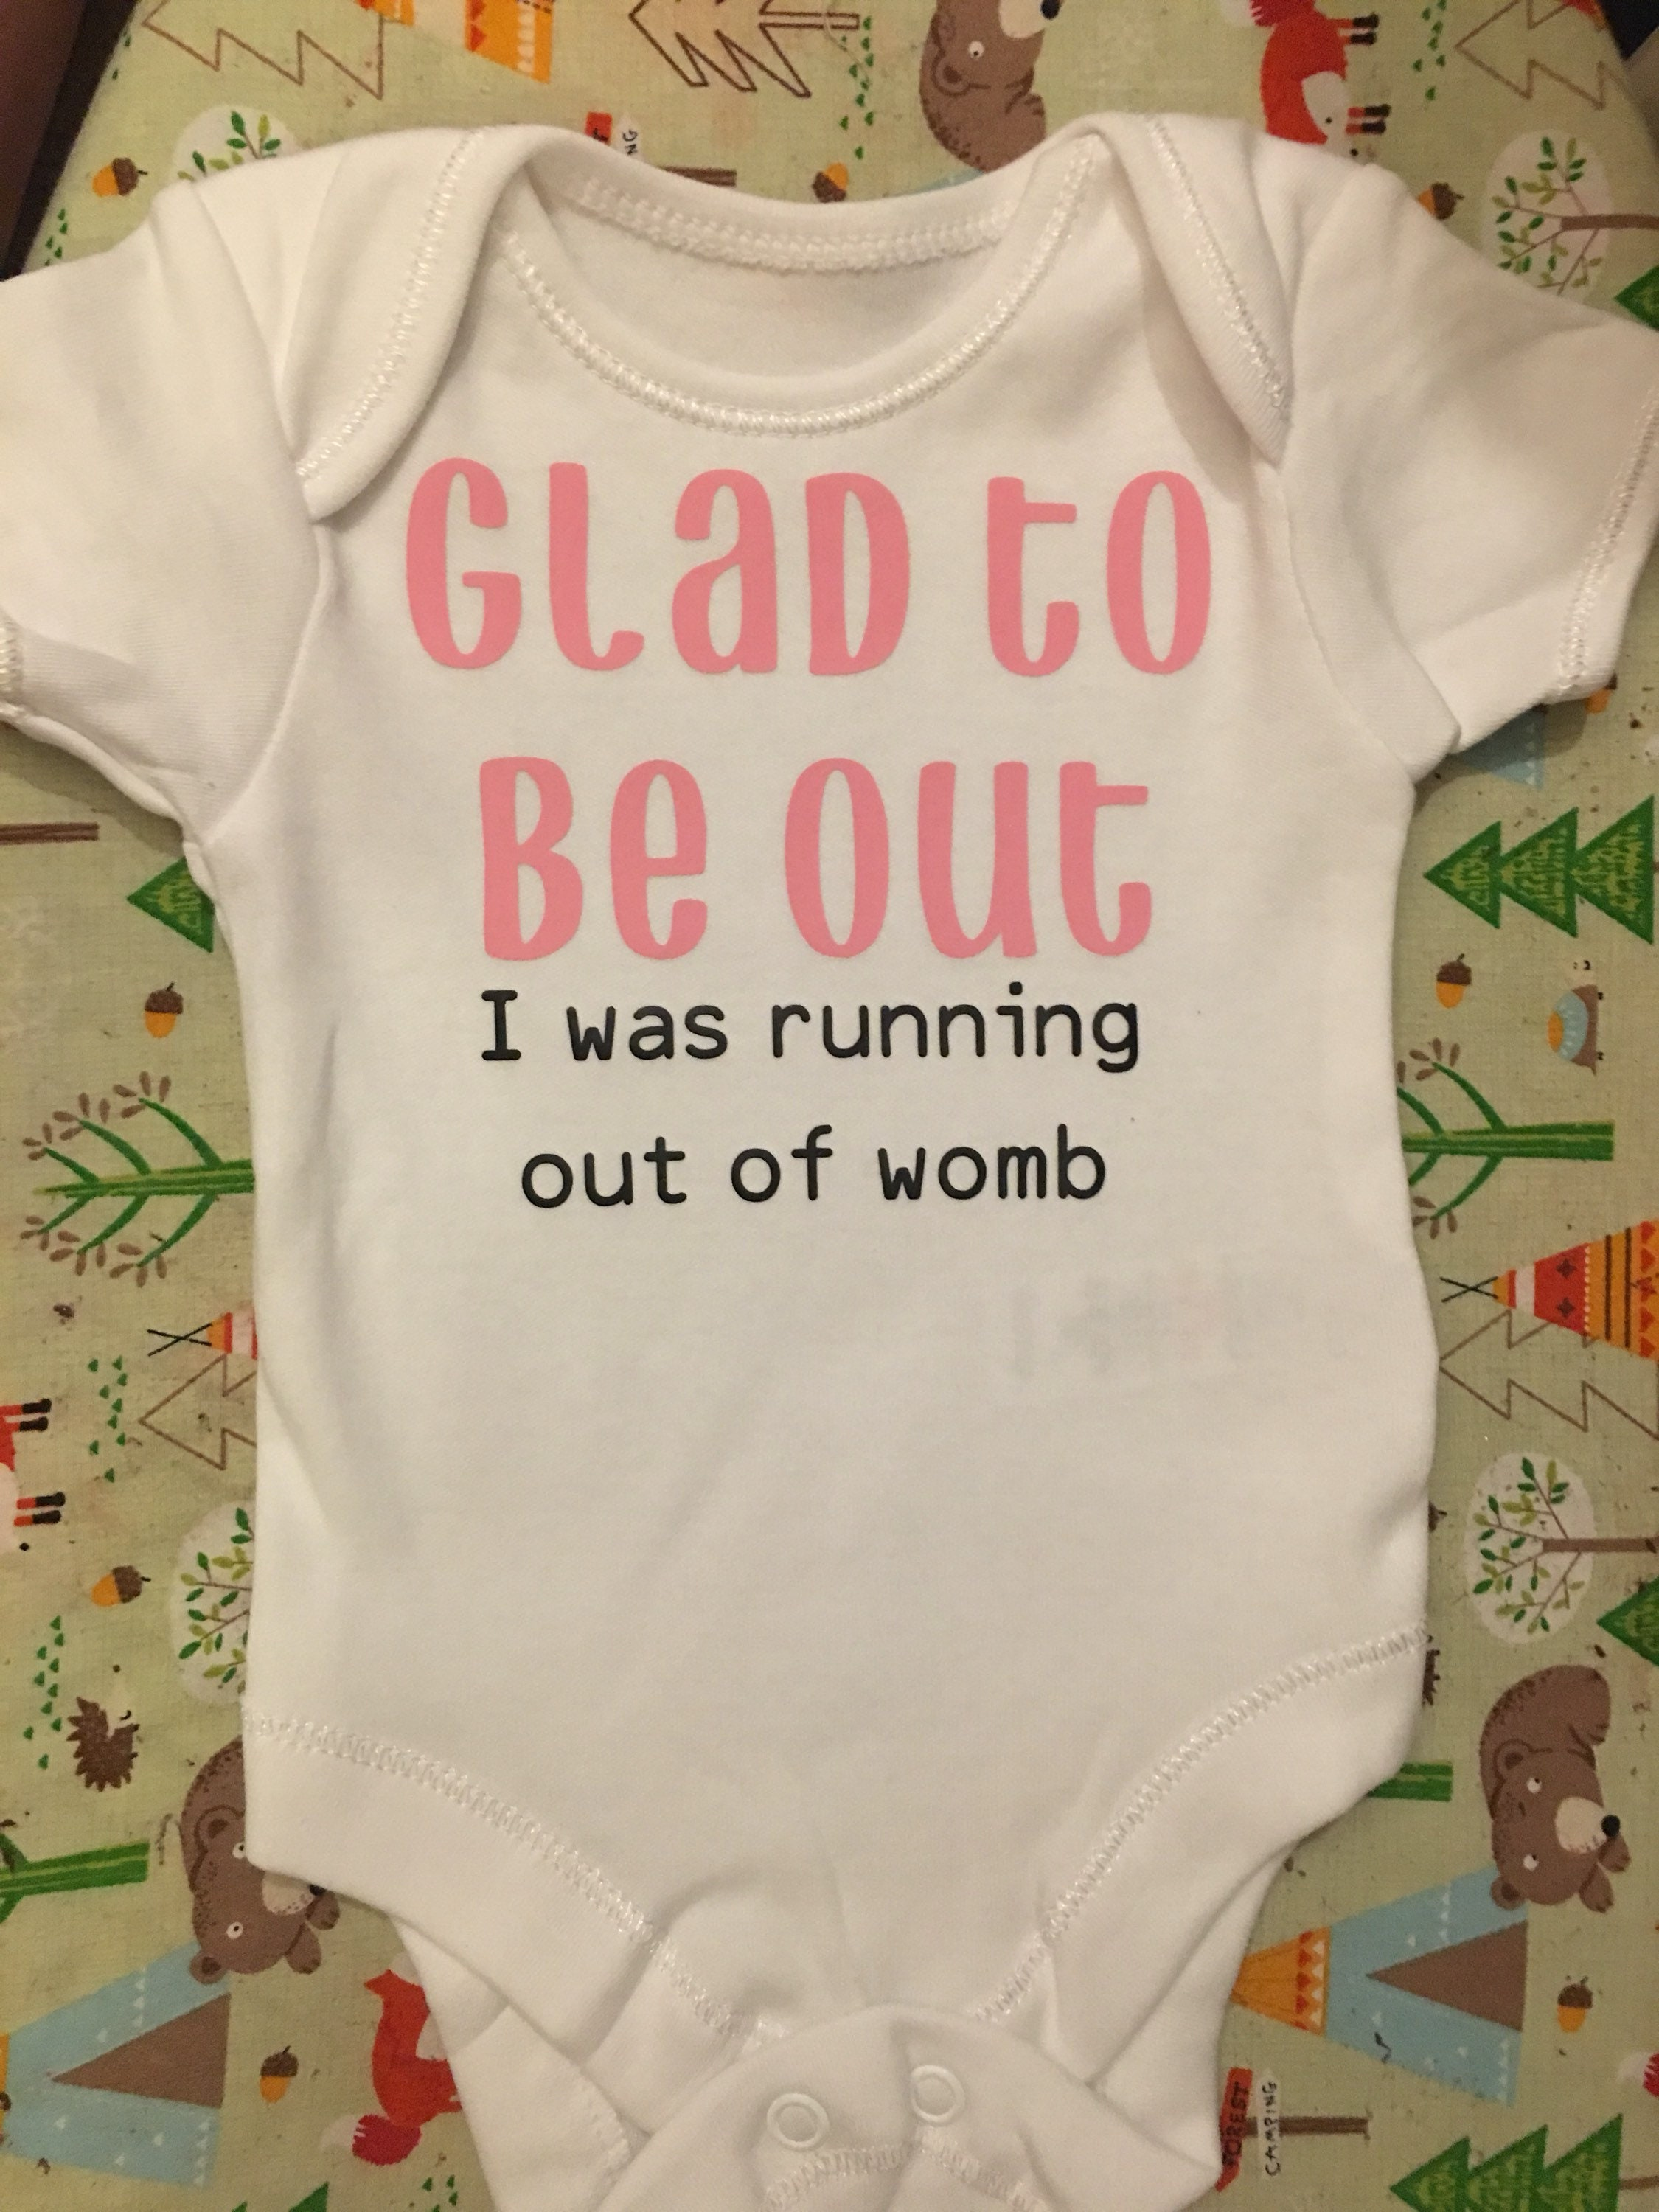 Glad to be out baby grow, Funny Baby Grow, Baby Shower Gift, Funny Babysuit, Funny Babygrow, New Baby Gift, Funny Baby Gift, Offensive Gift